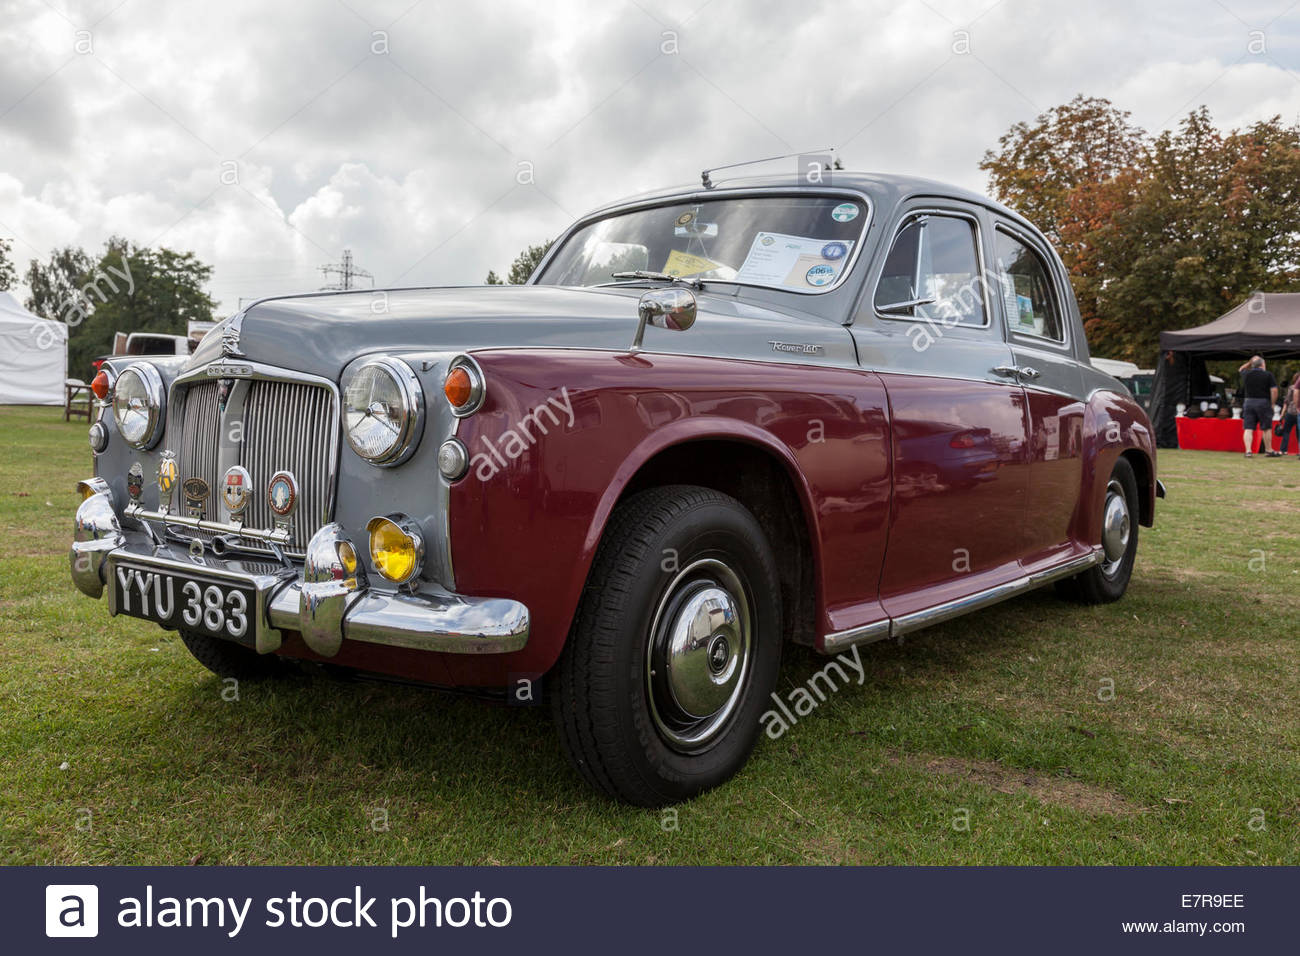 Rover 100 on show at a classic car event - year of manufacture 1960 Stock Photo